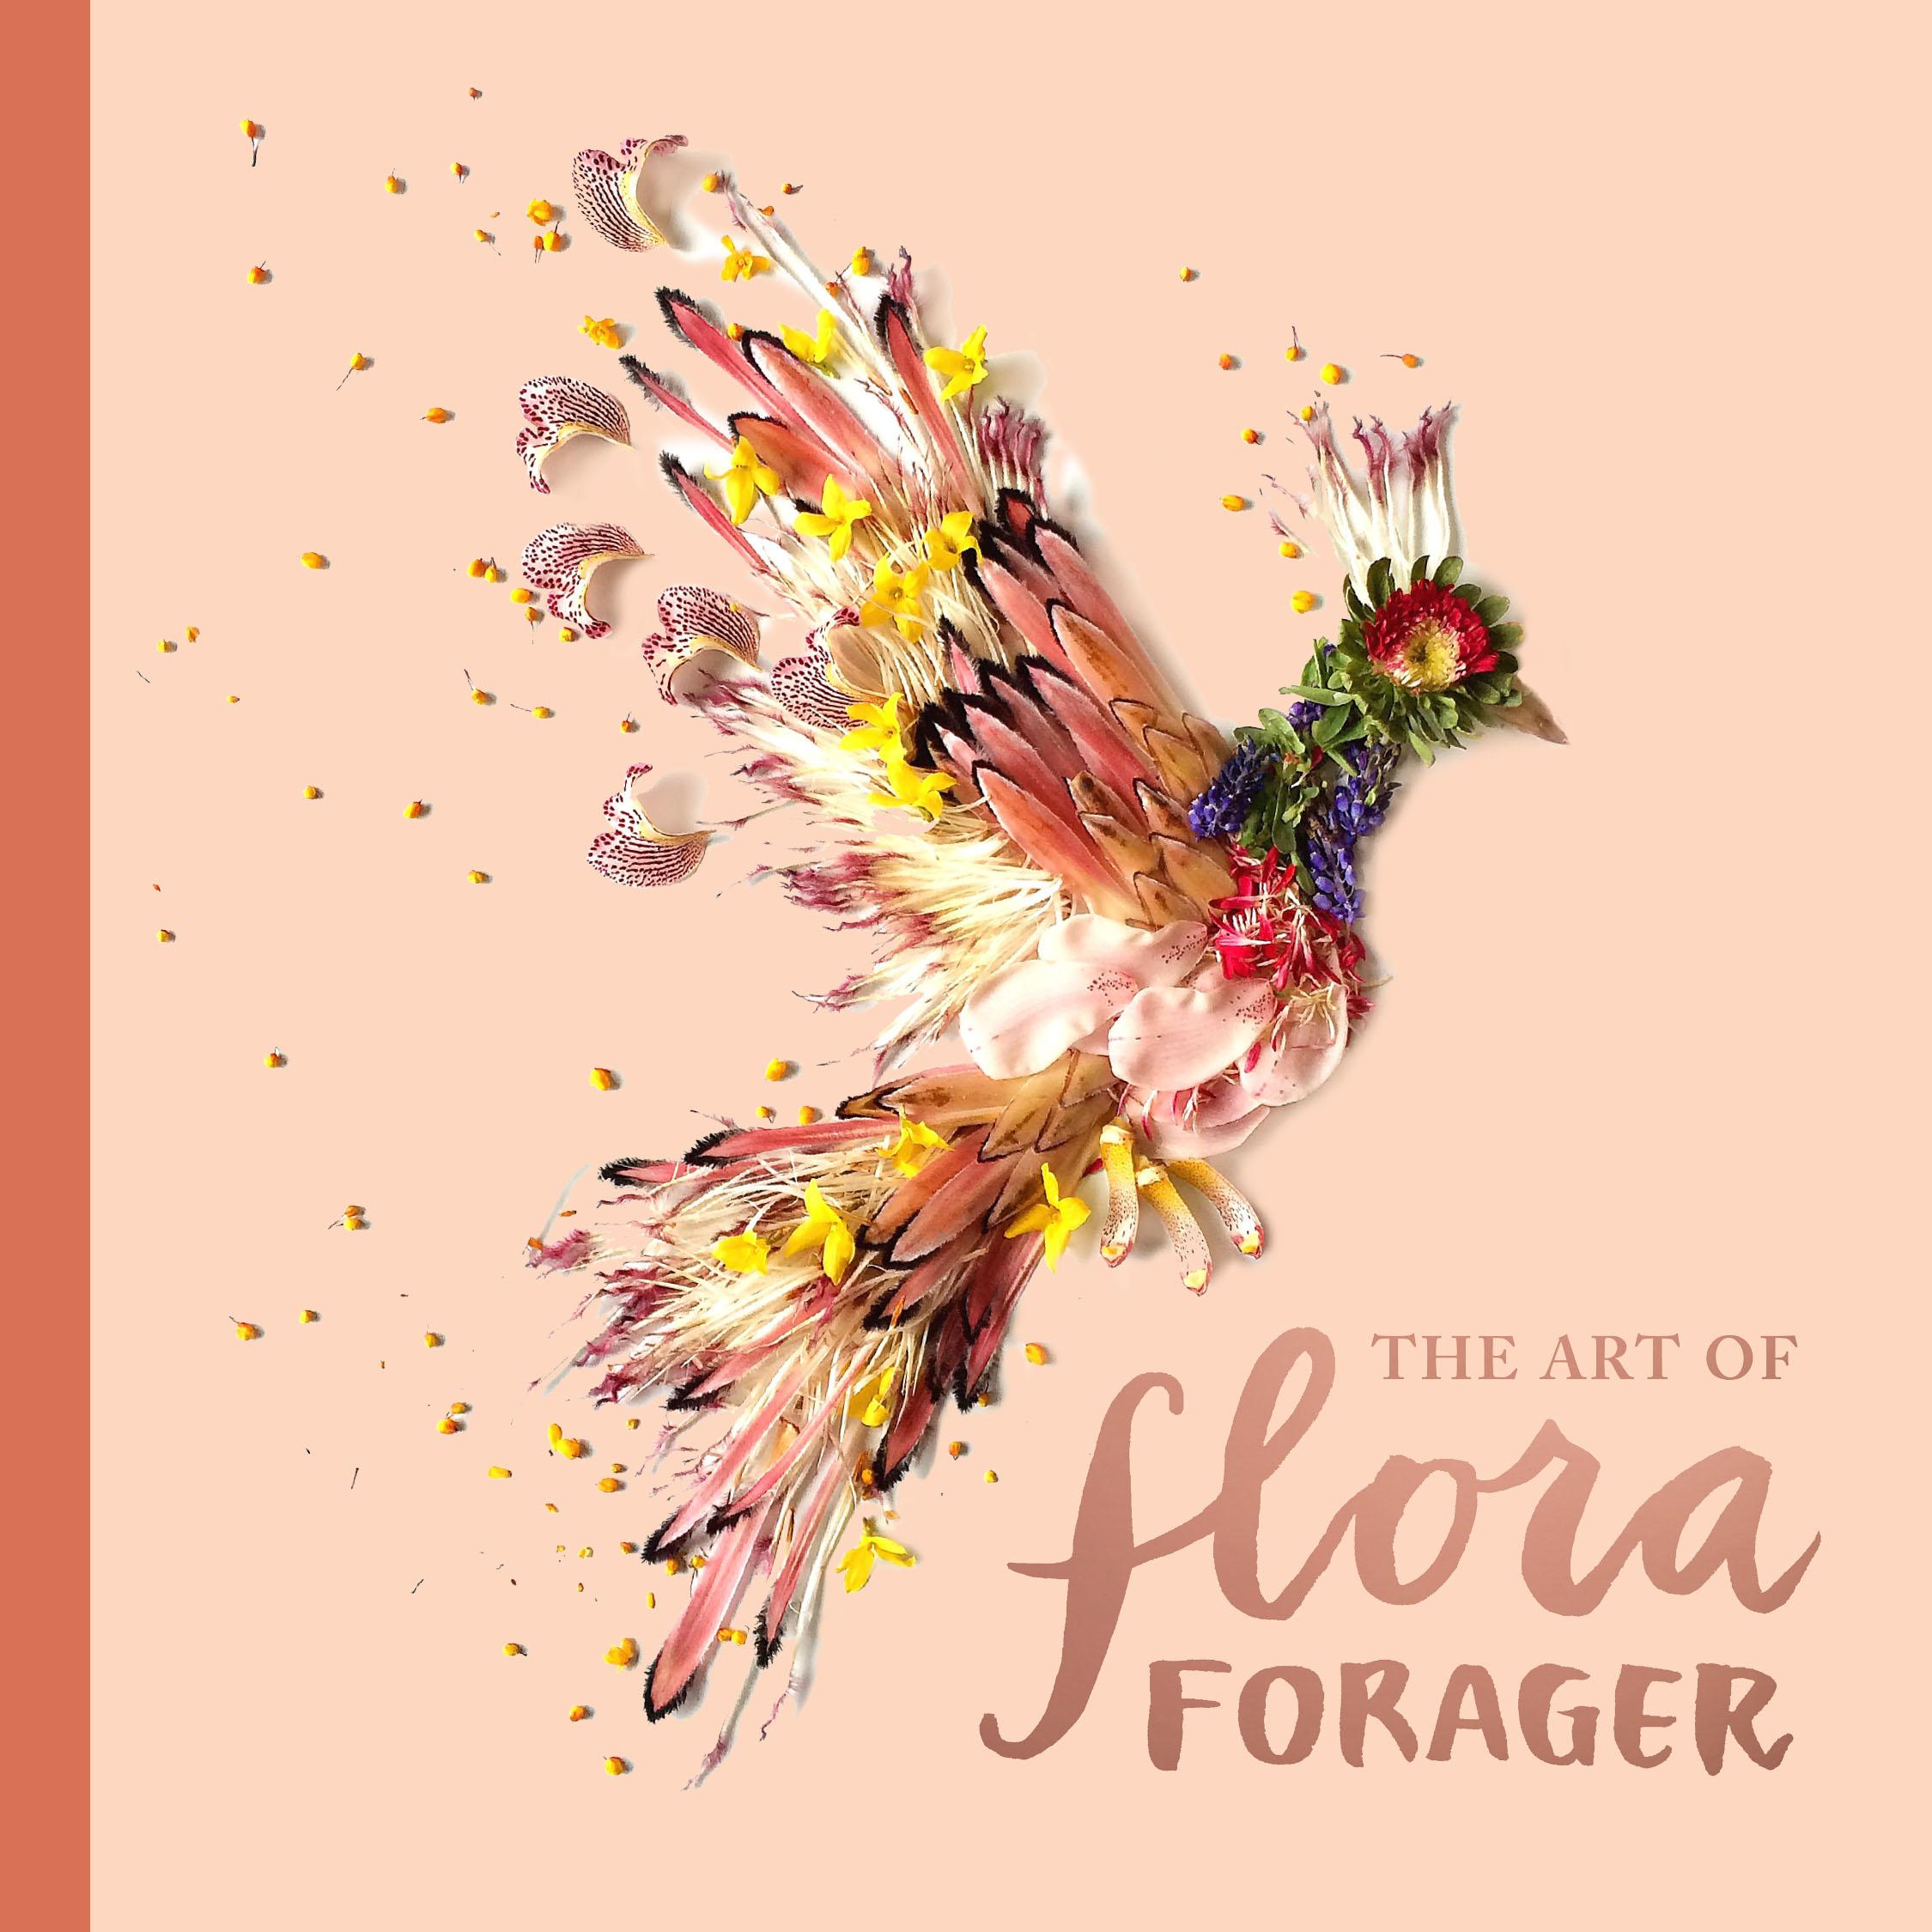 The Art of Flora Forager by Bridget Beth Collins, (Image courtesy of Sasquatch Books).